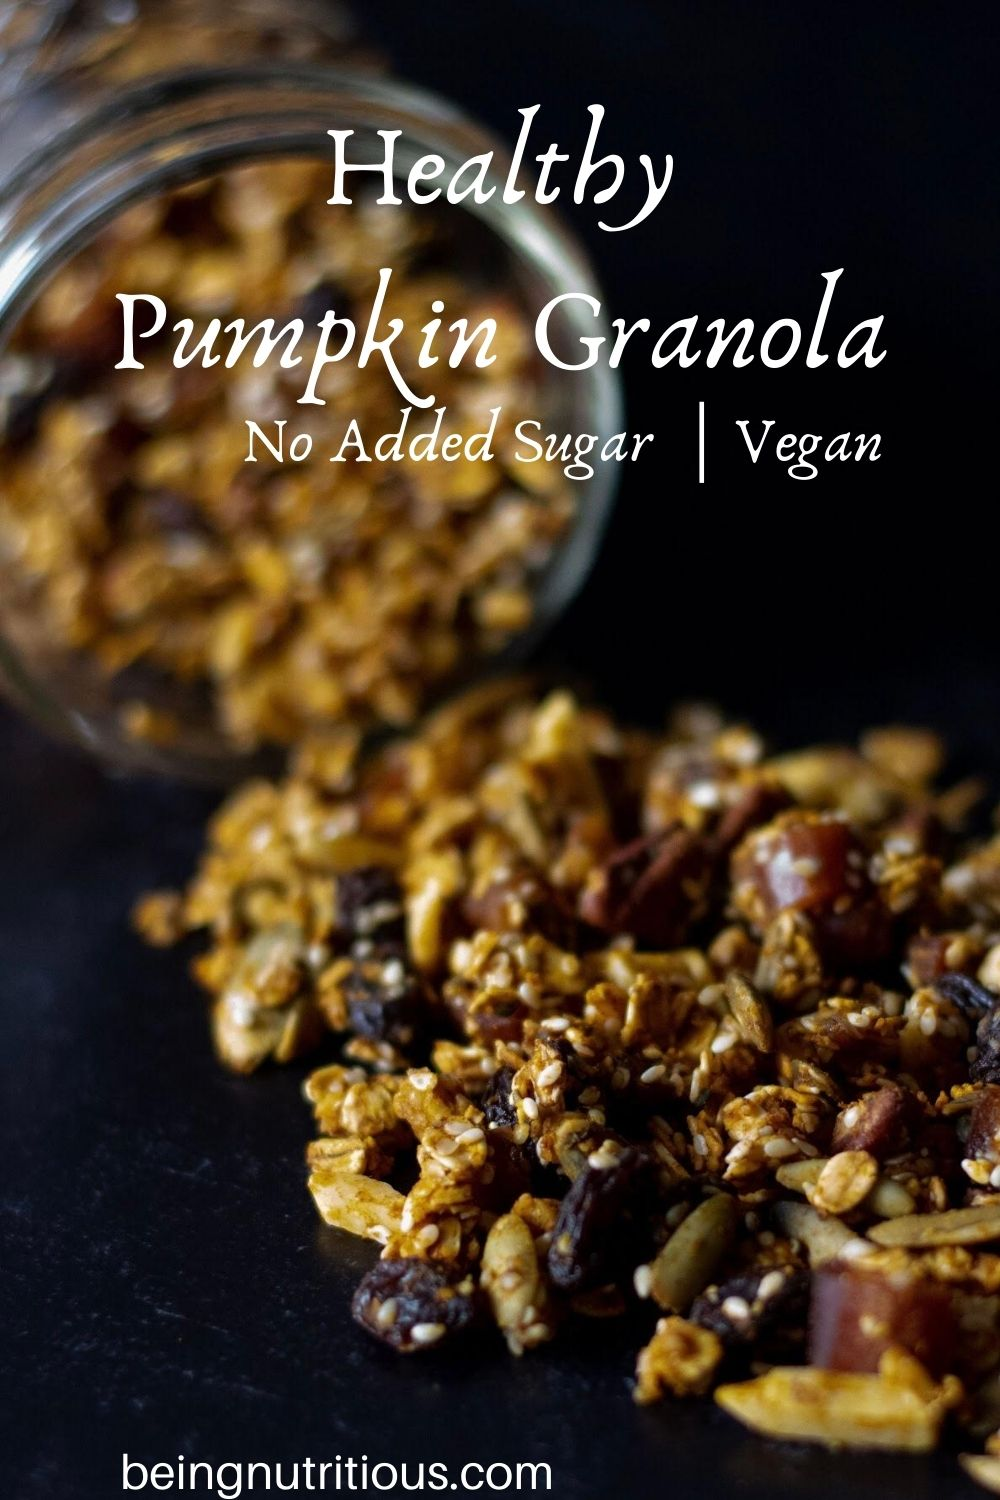 Granola spilling out of a Mason jar on a black background with text overlay: Heart Healthy Pumpkin Granola, no added sugar, vegan.